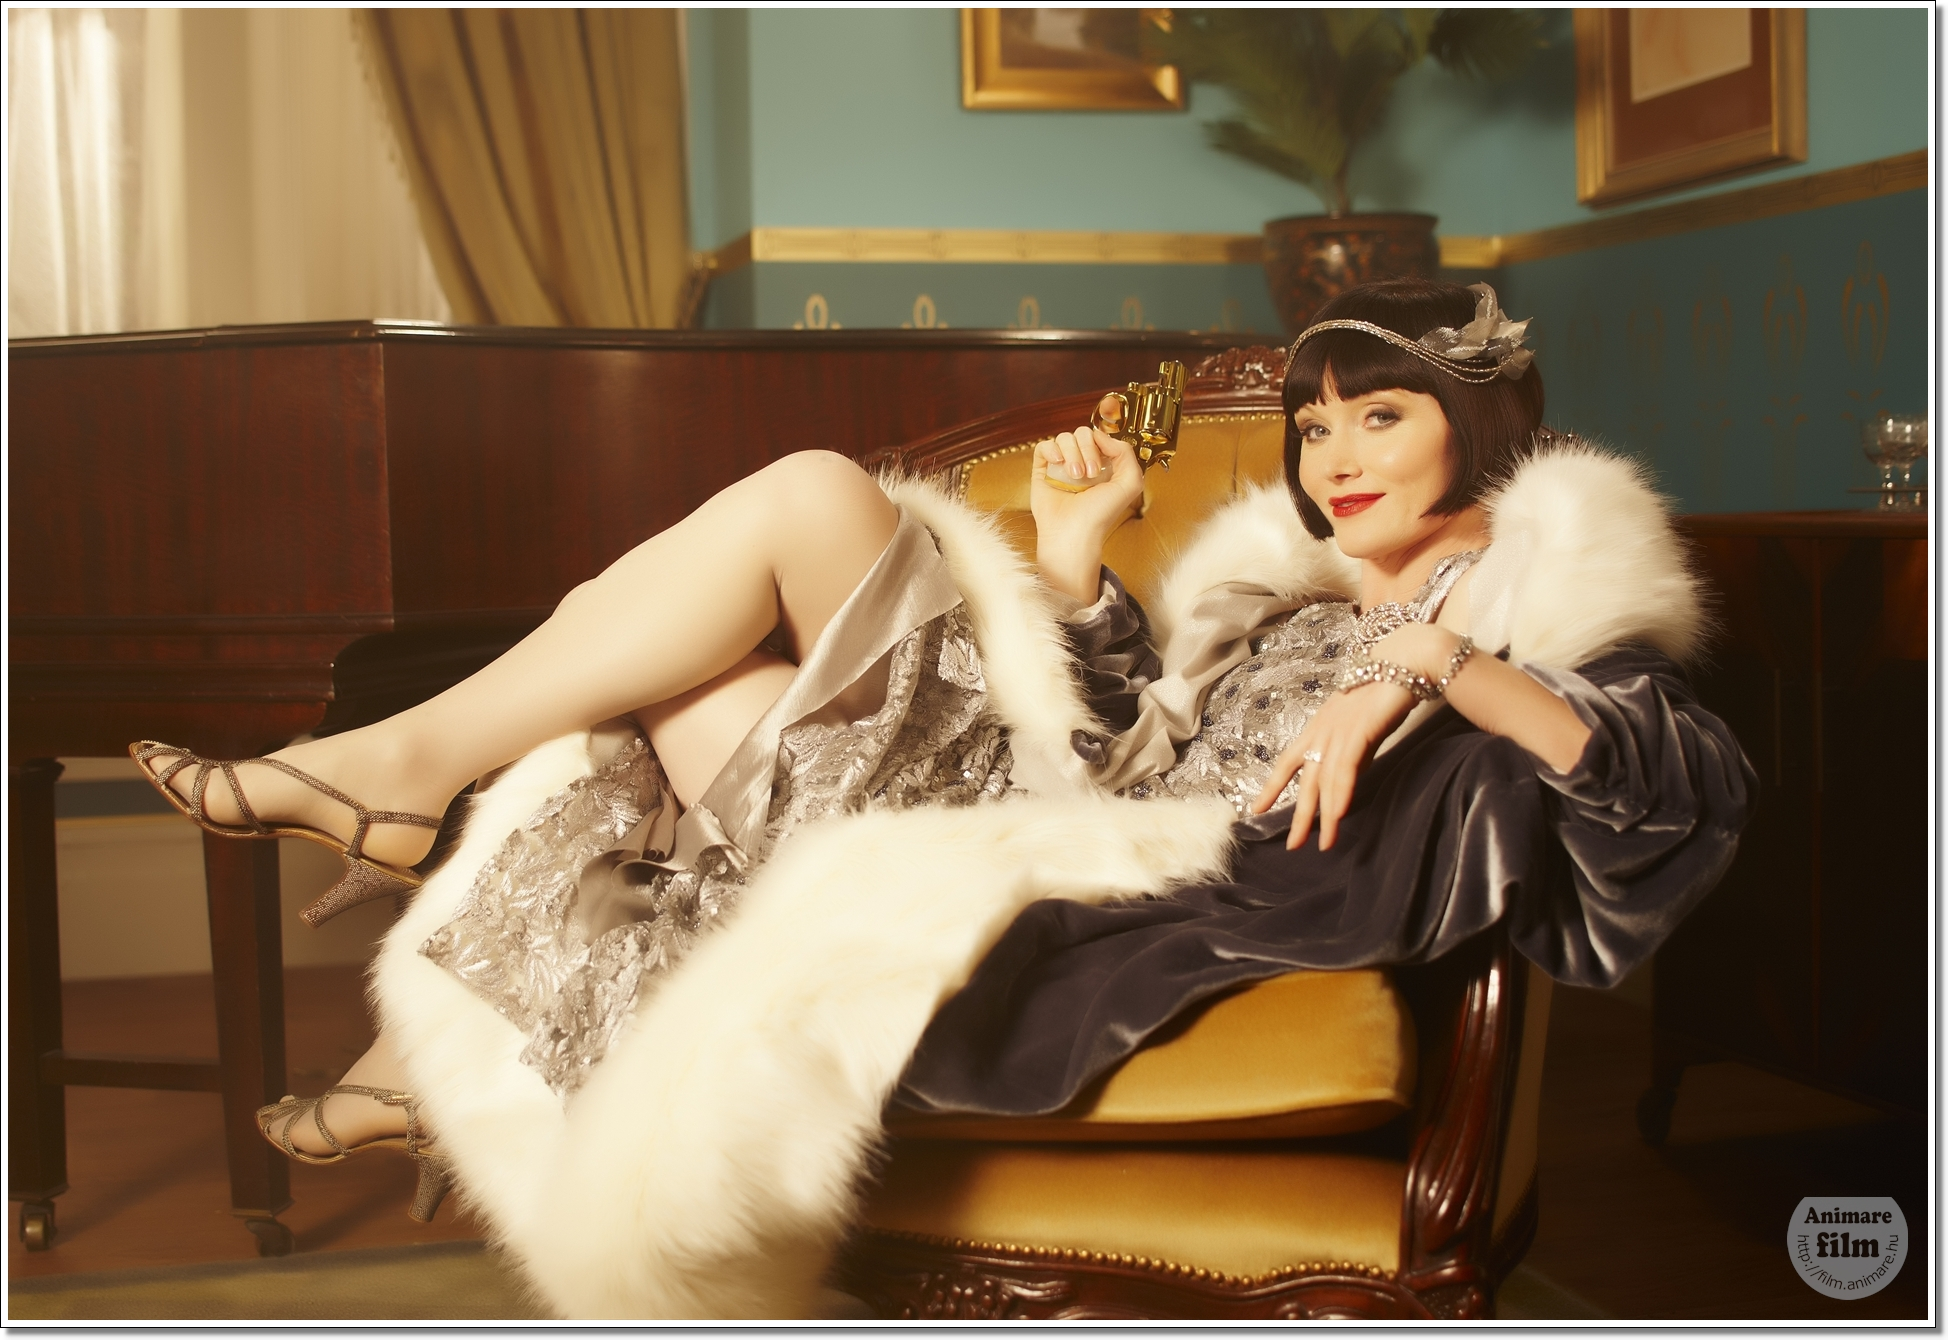 kalap-fotel-miss phryne fisher-ozmonda